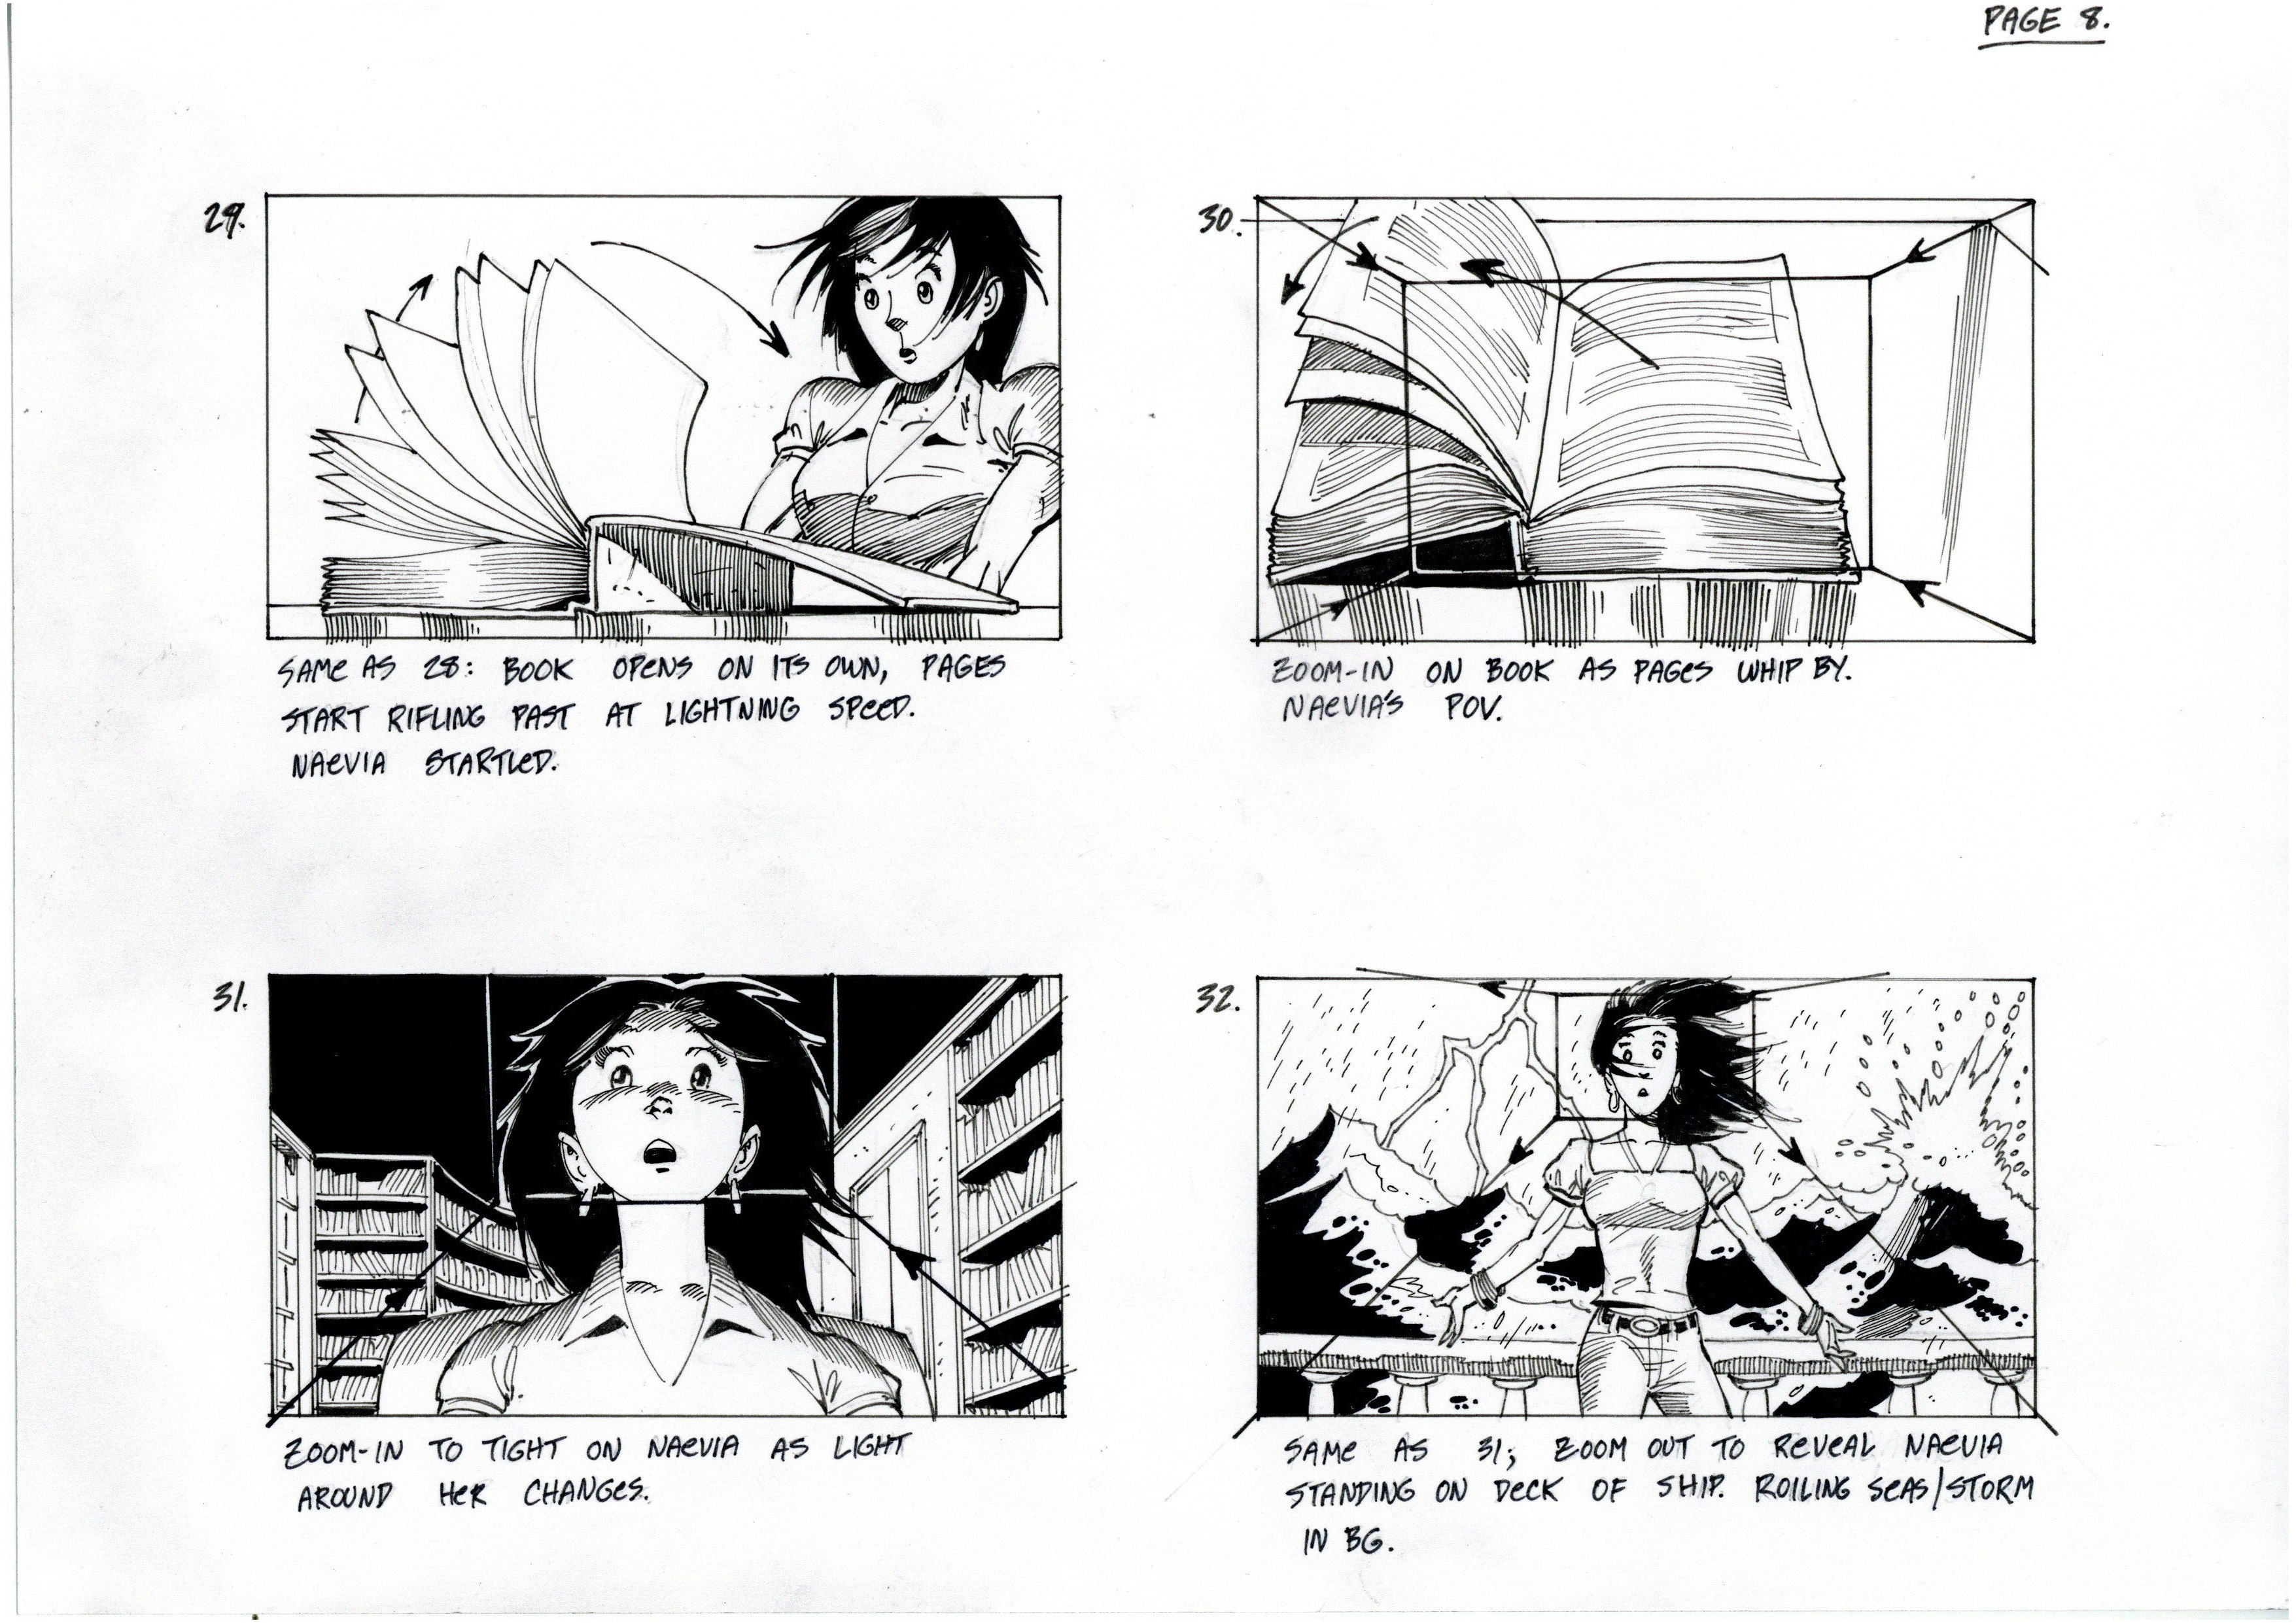 Storyboard Sample 1.